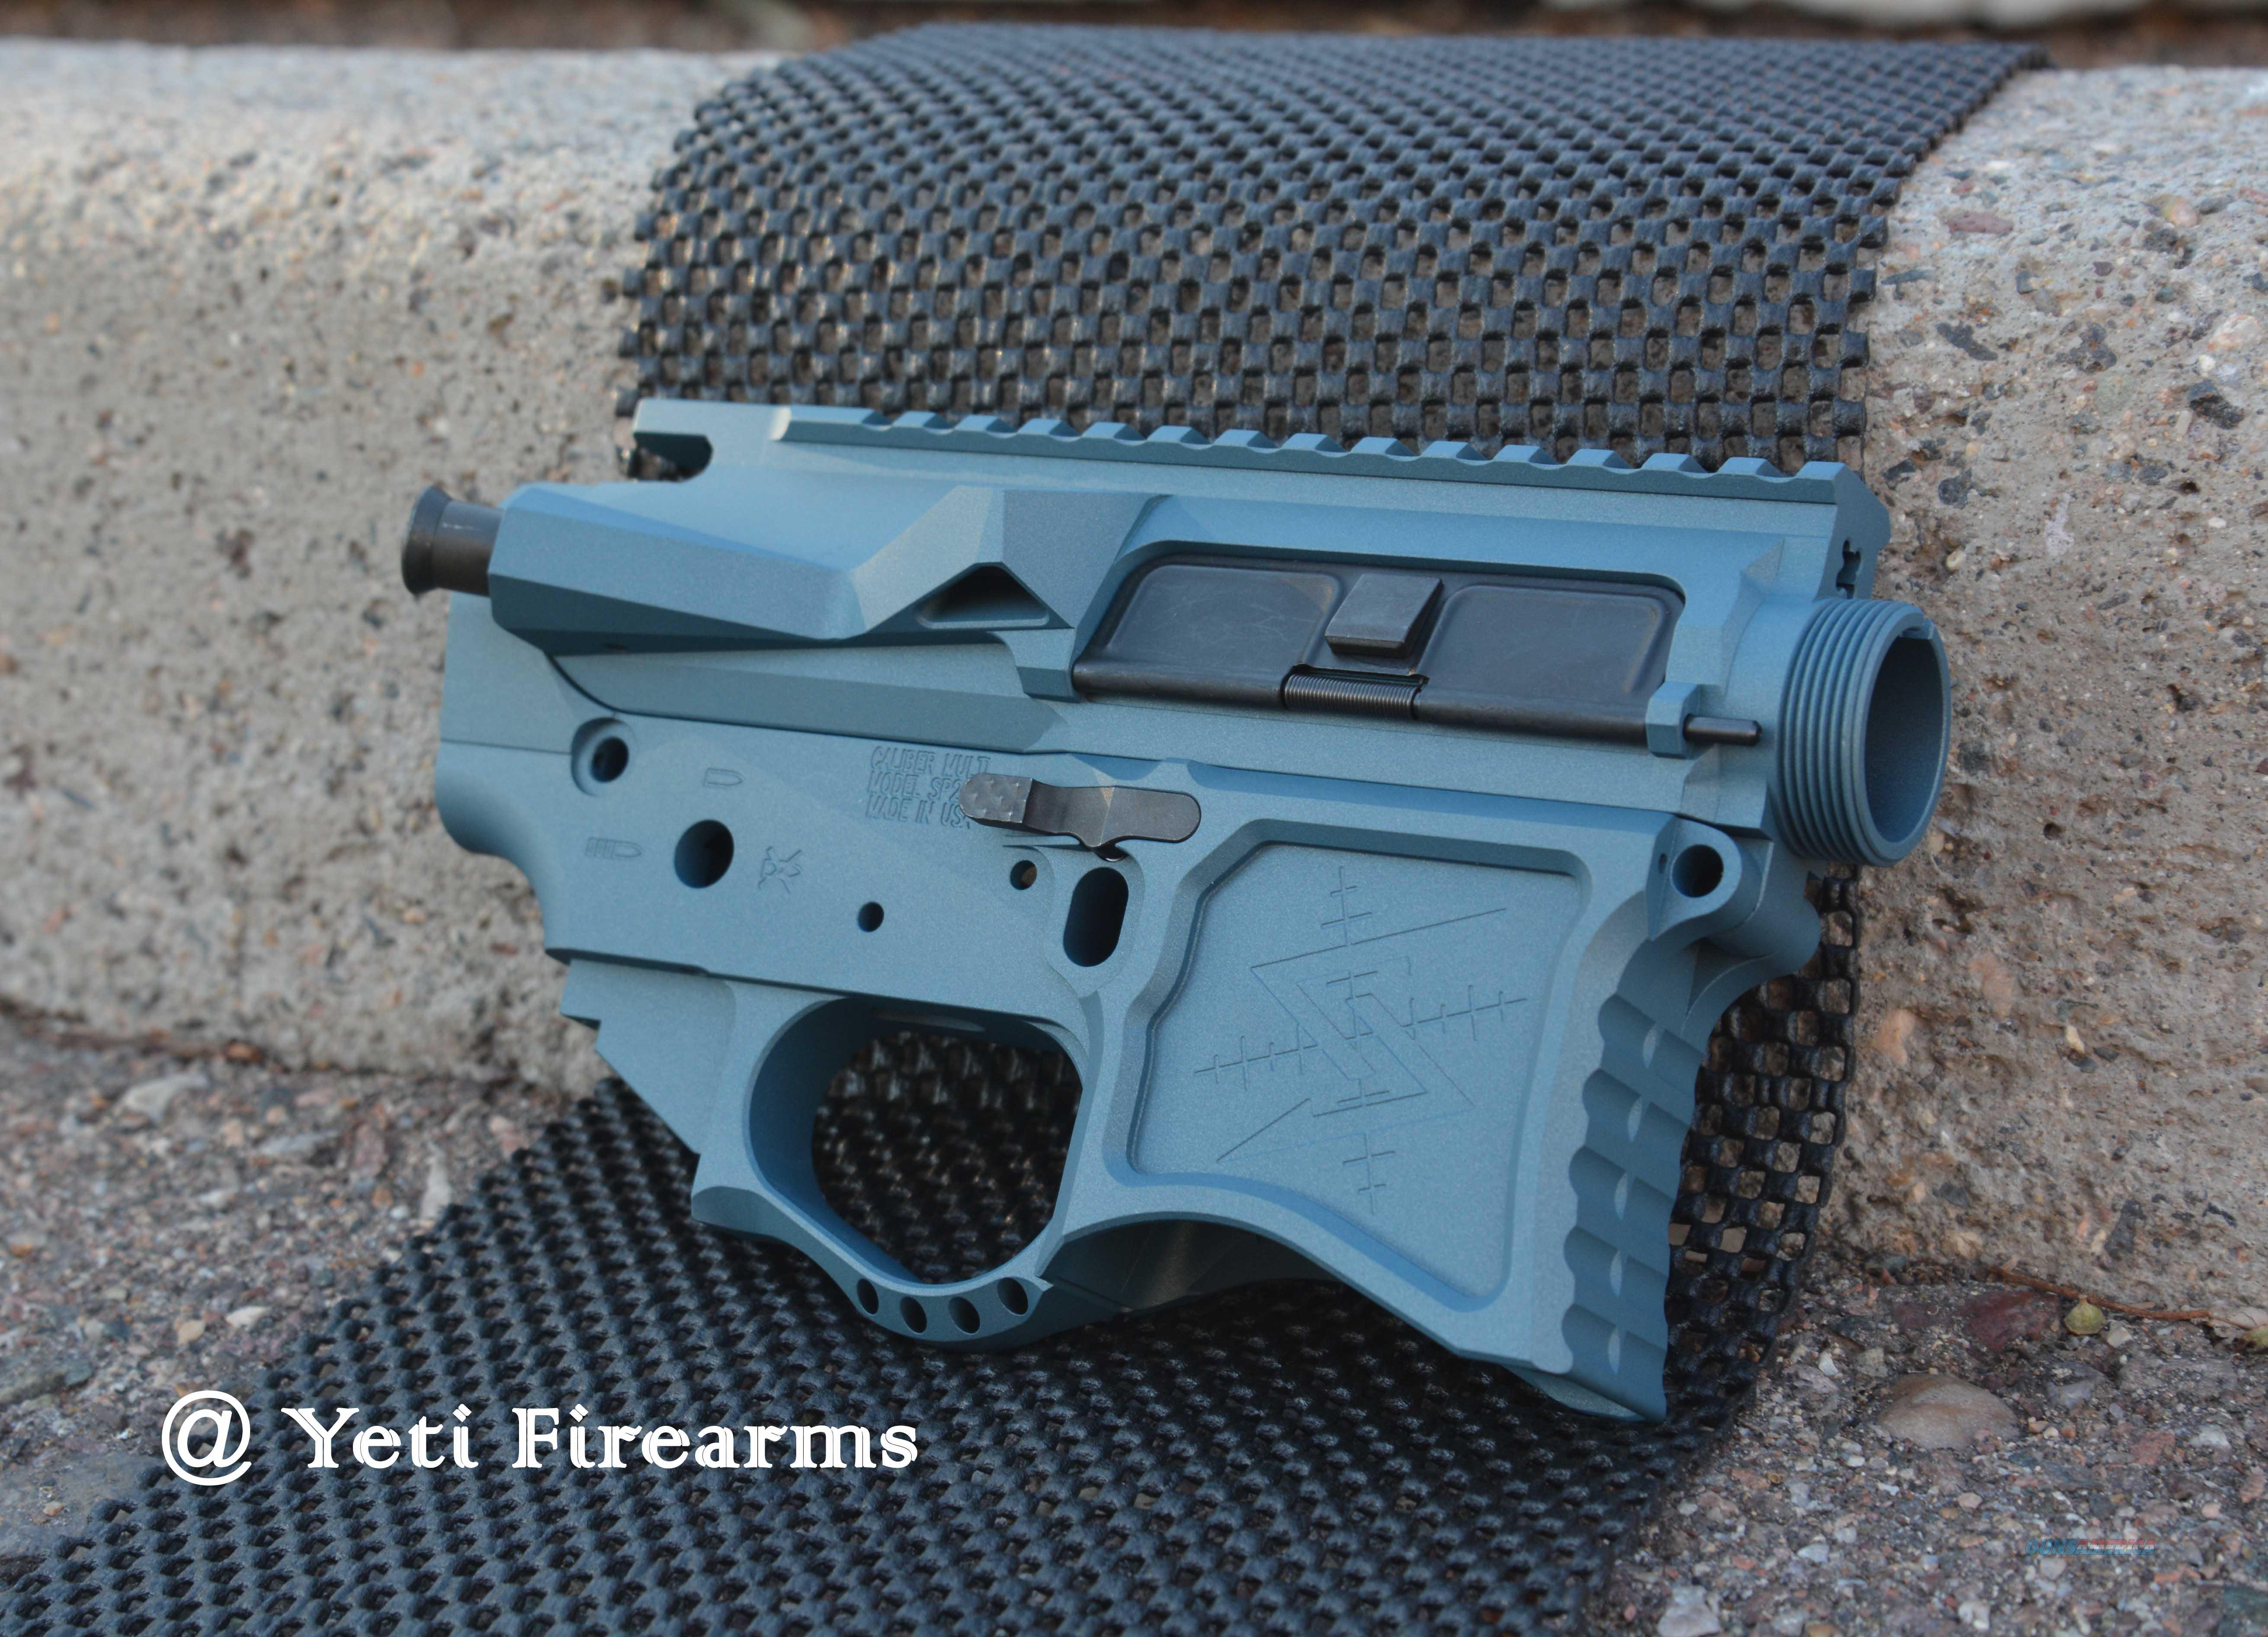 Seekins SP223 Billet AR-15 Set Blue Titanium X-Werks  Guns > Rifles > AR-15 Rifles - Small Manufacturers > Lower Only